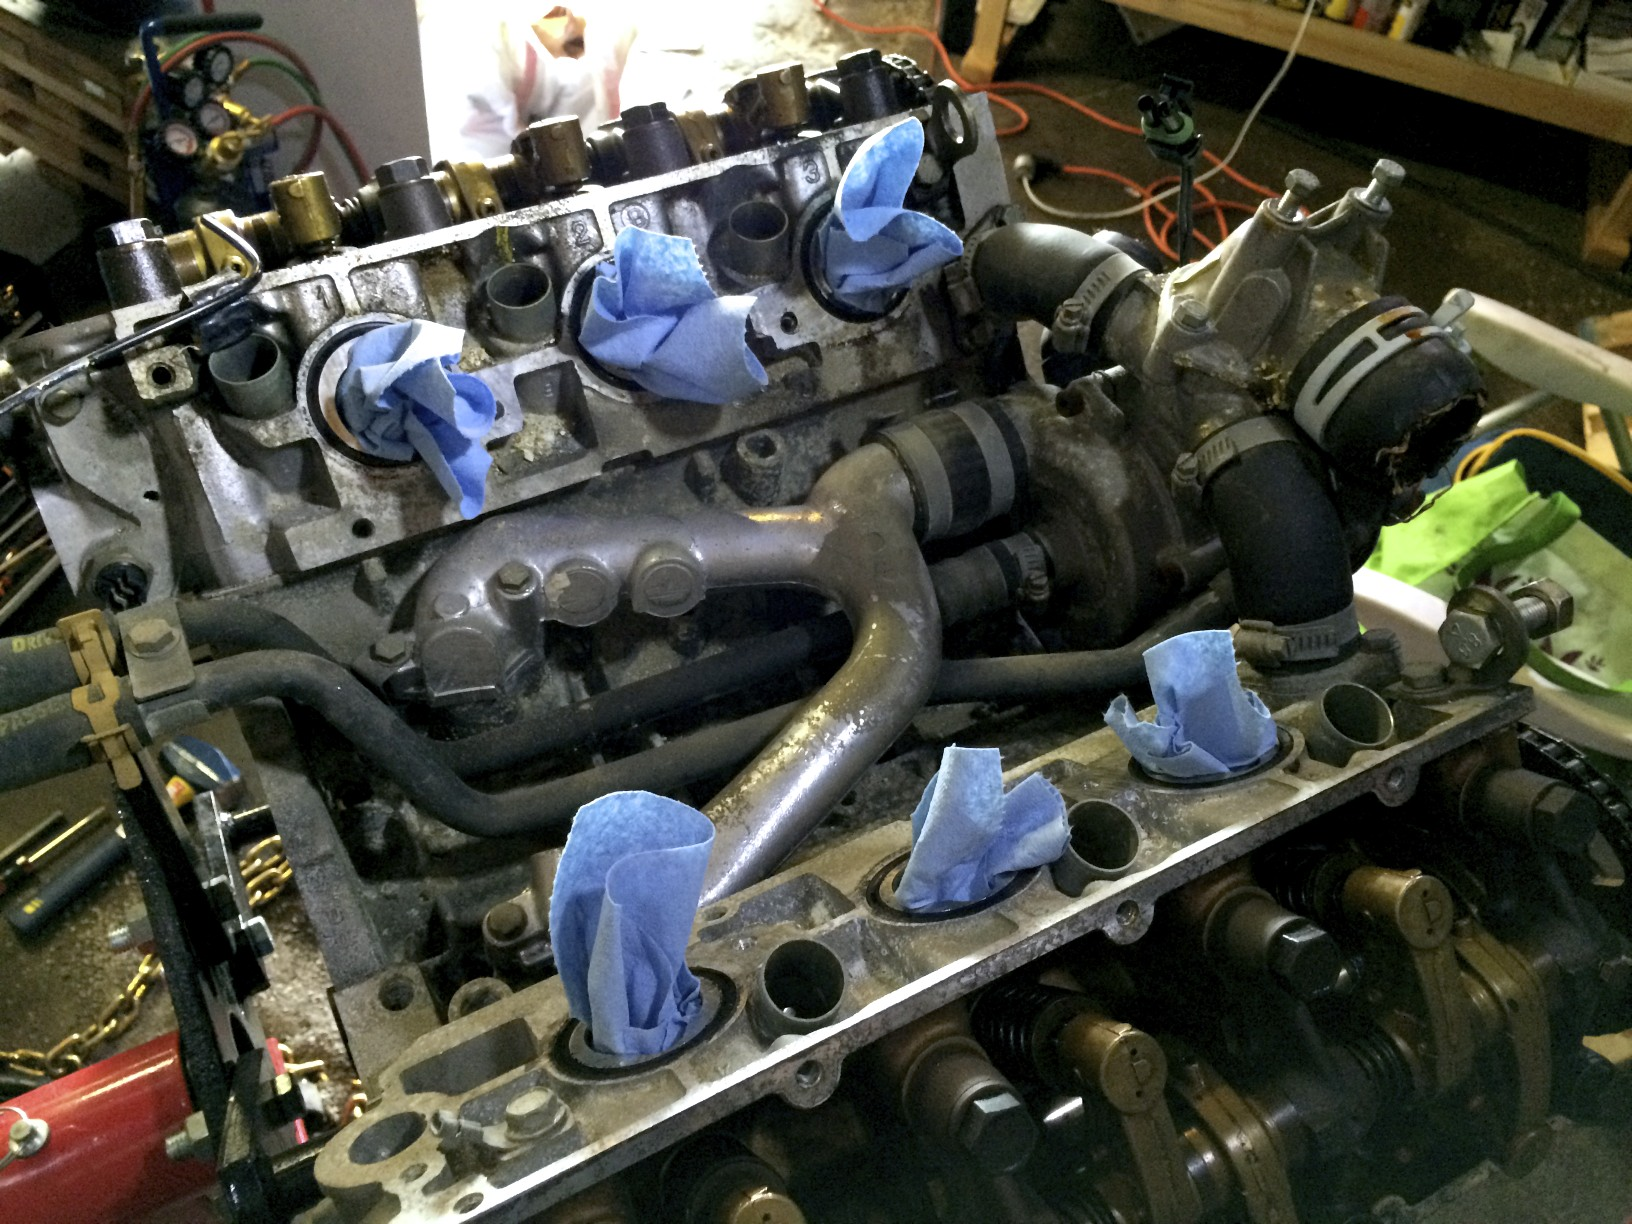 Inside the valley, under the manifold.